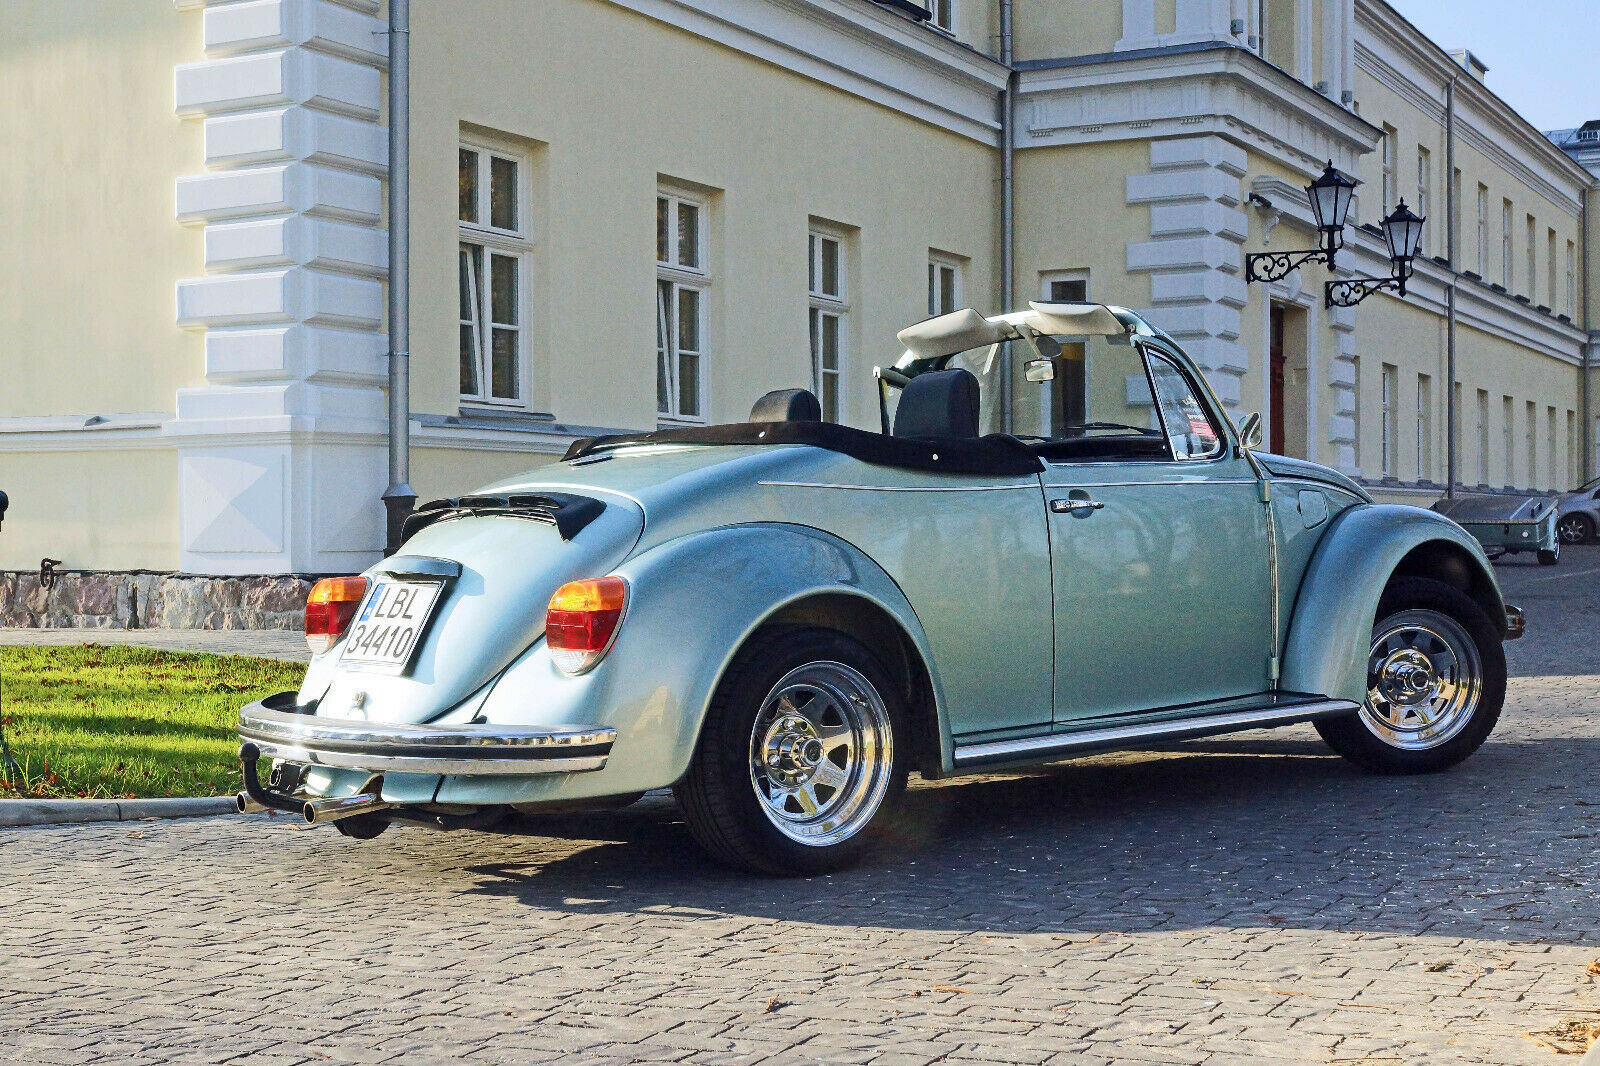 1984 Volkswagen Beetle Cabrio + tent trailer For Sale (picture 3 of 6)